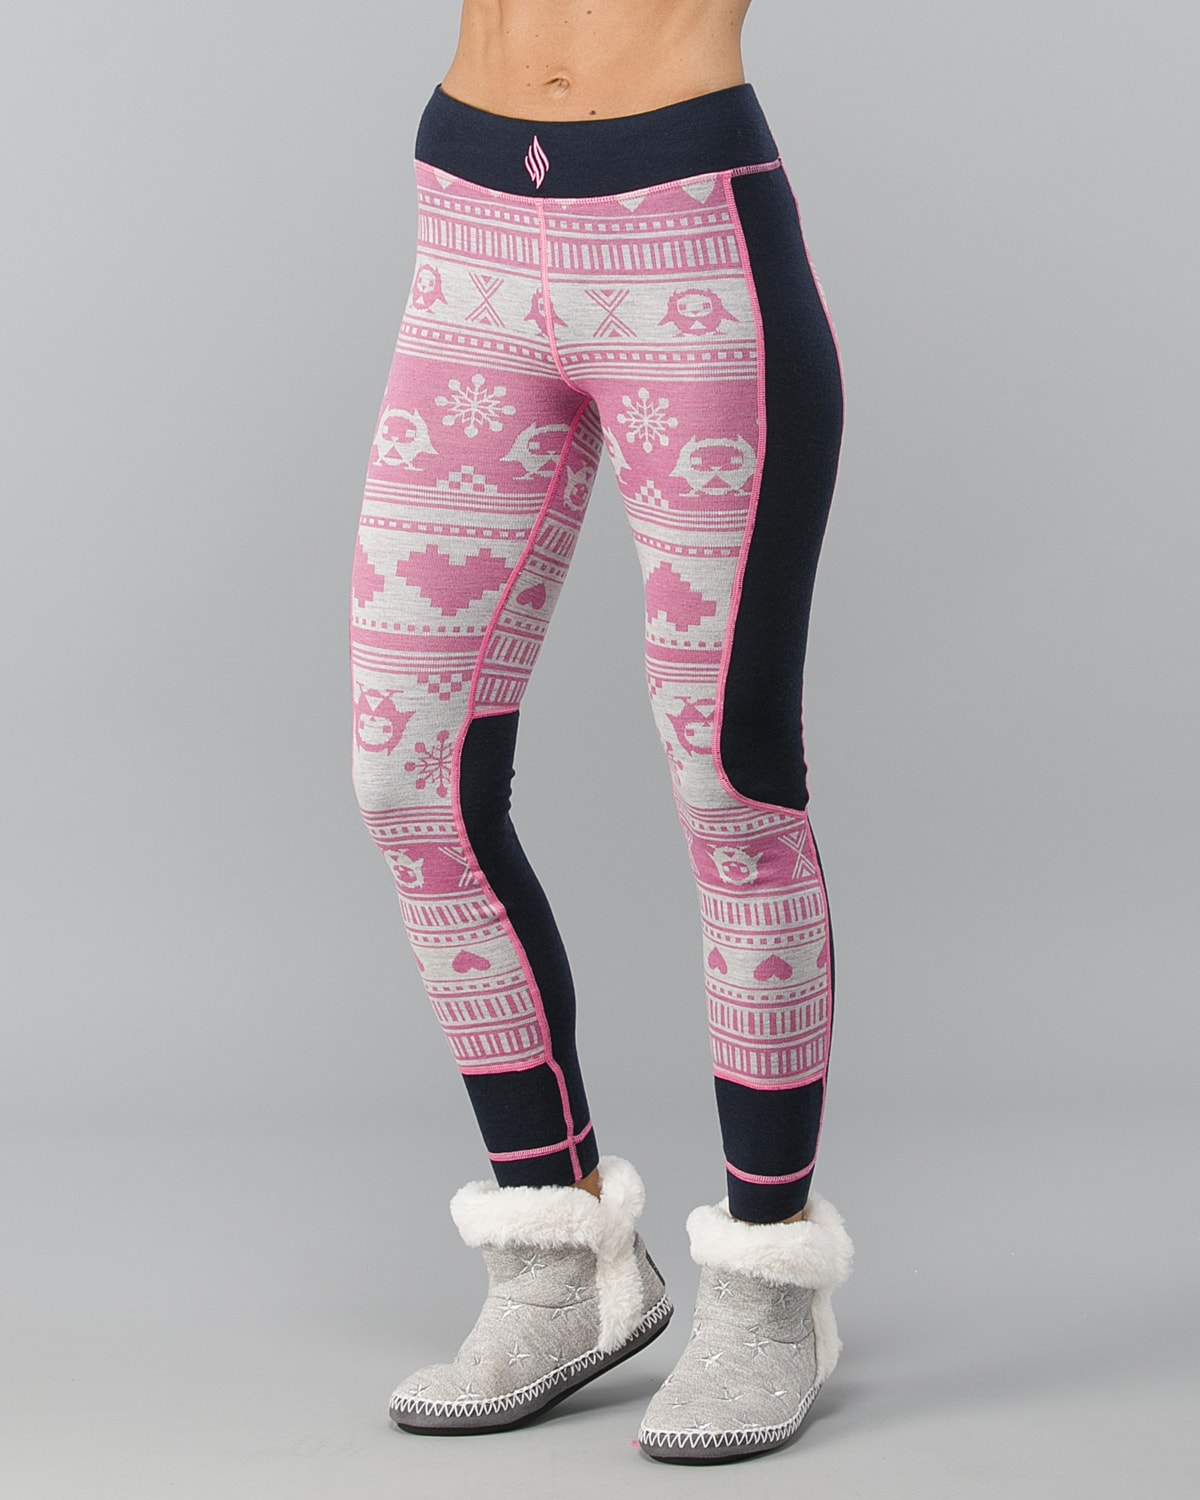 We-Are-Fit-Pink Owl-Merino-Wool Pant3